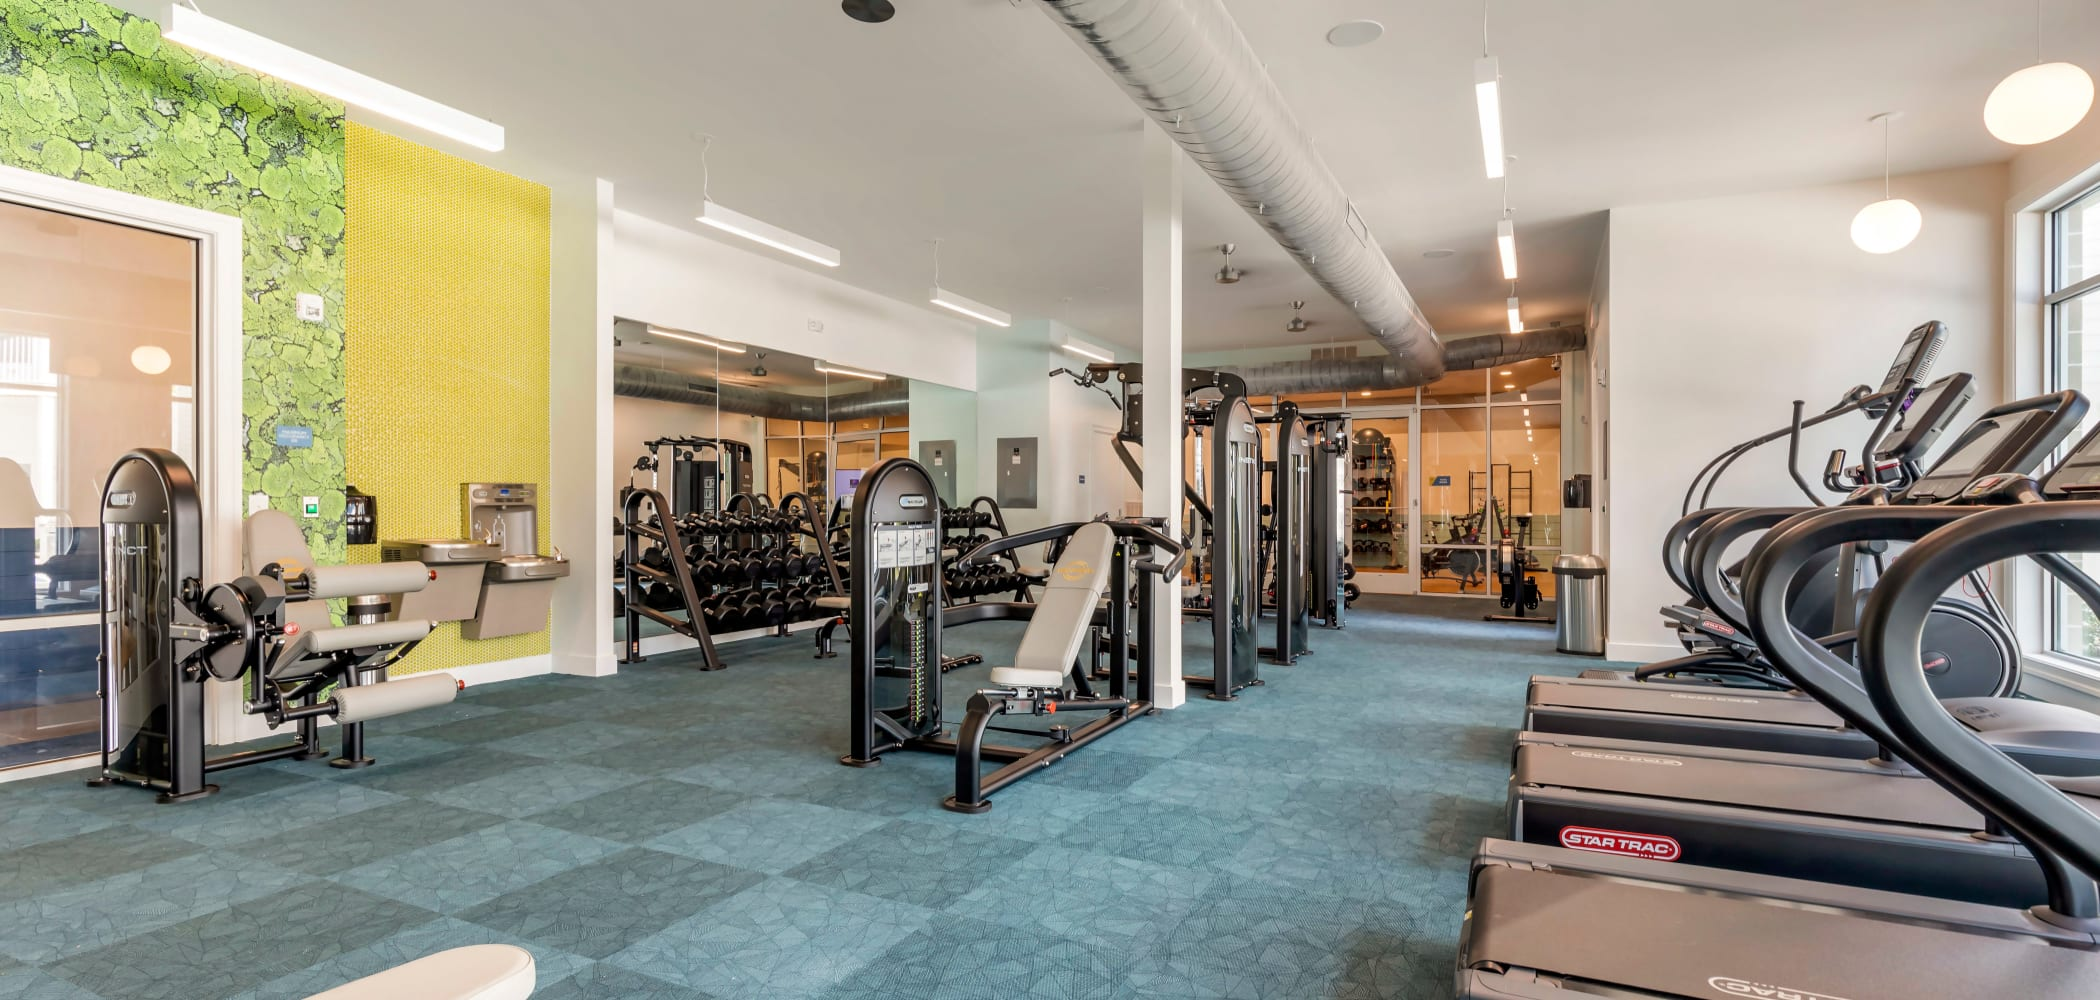 Fitness center at UNCOMMON Wilmington in Wilmington, North Carolina